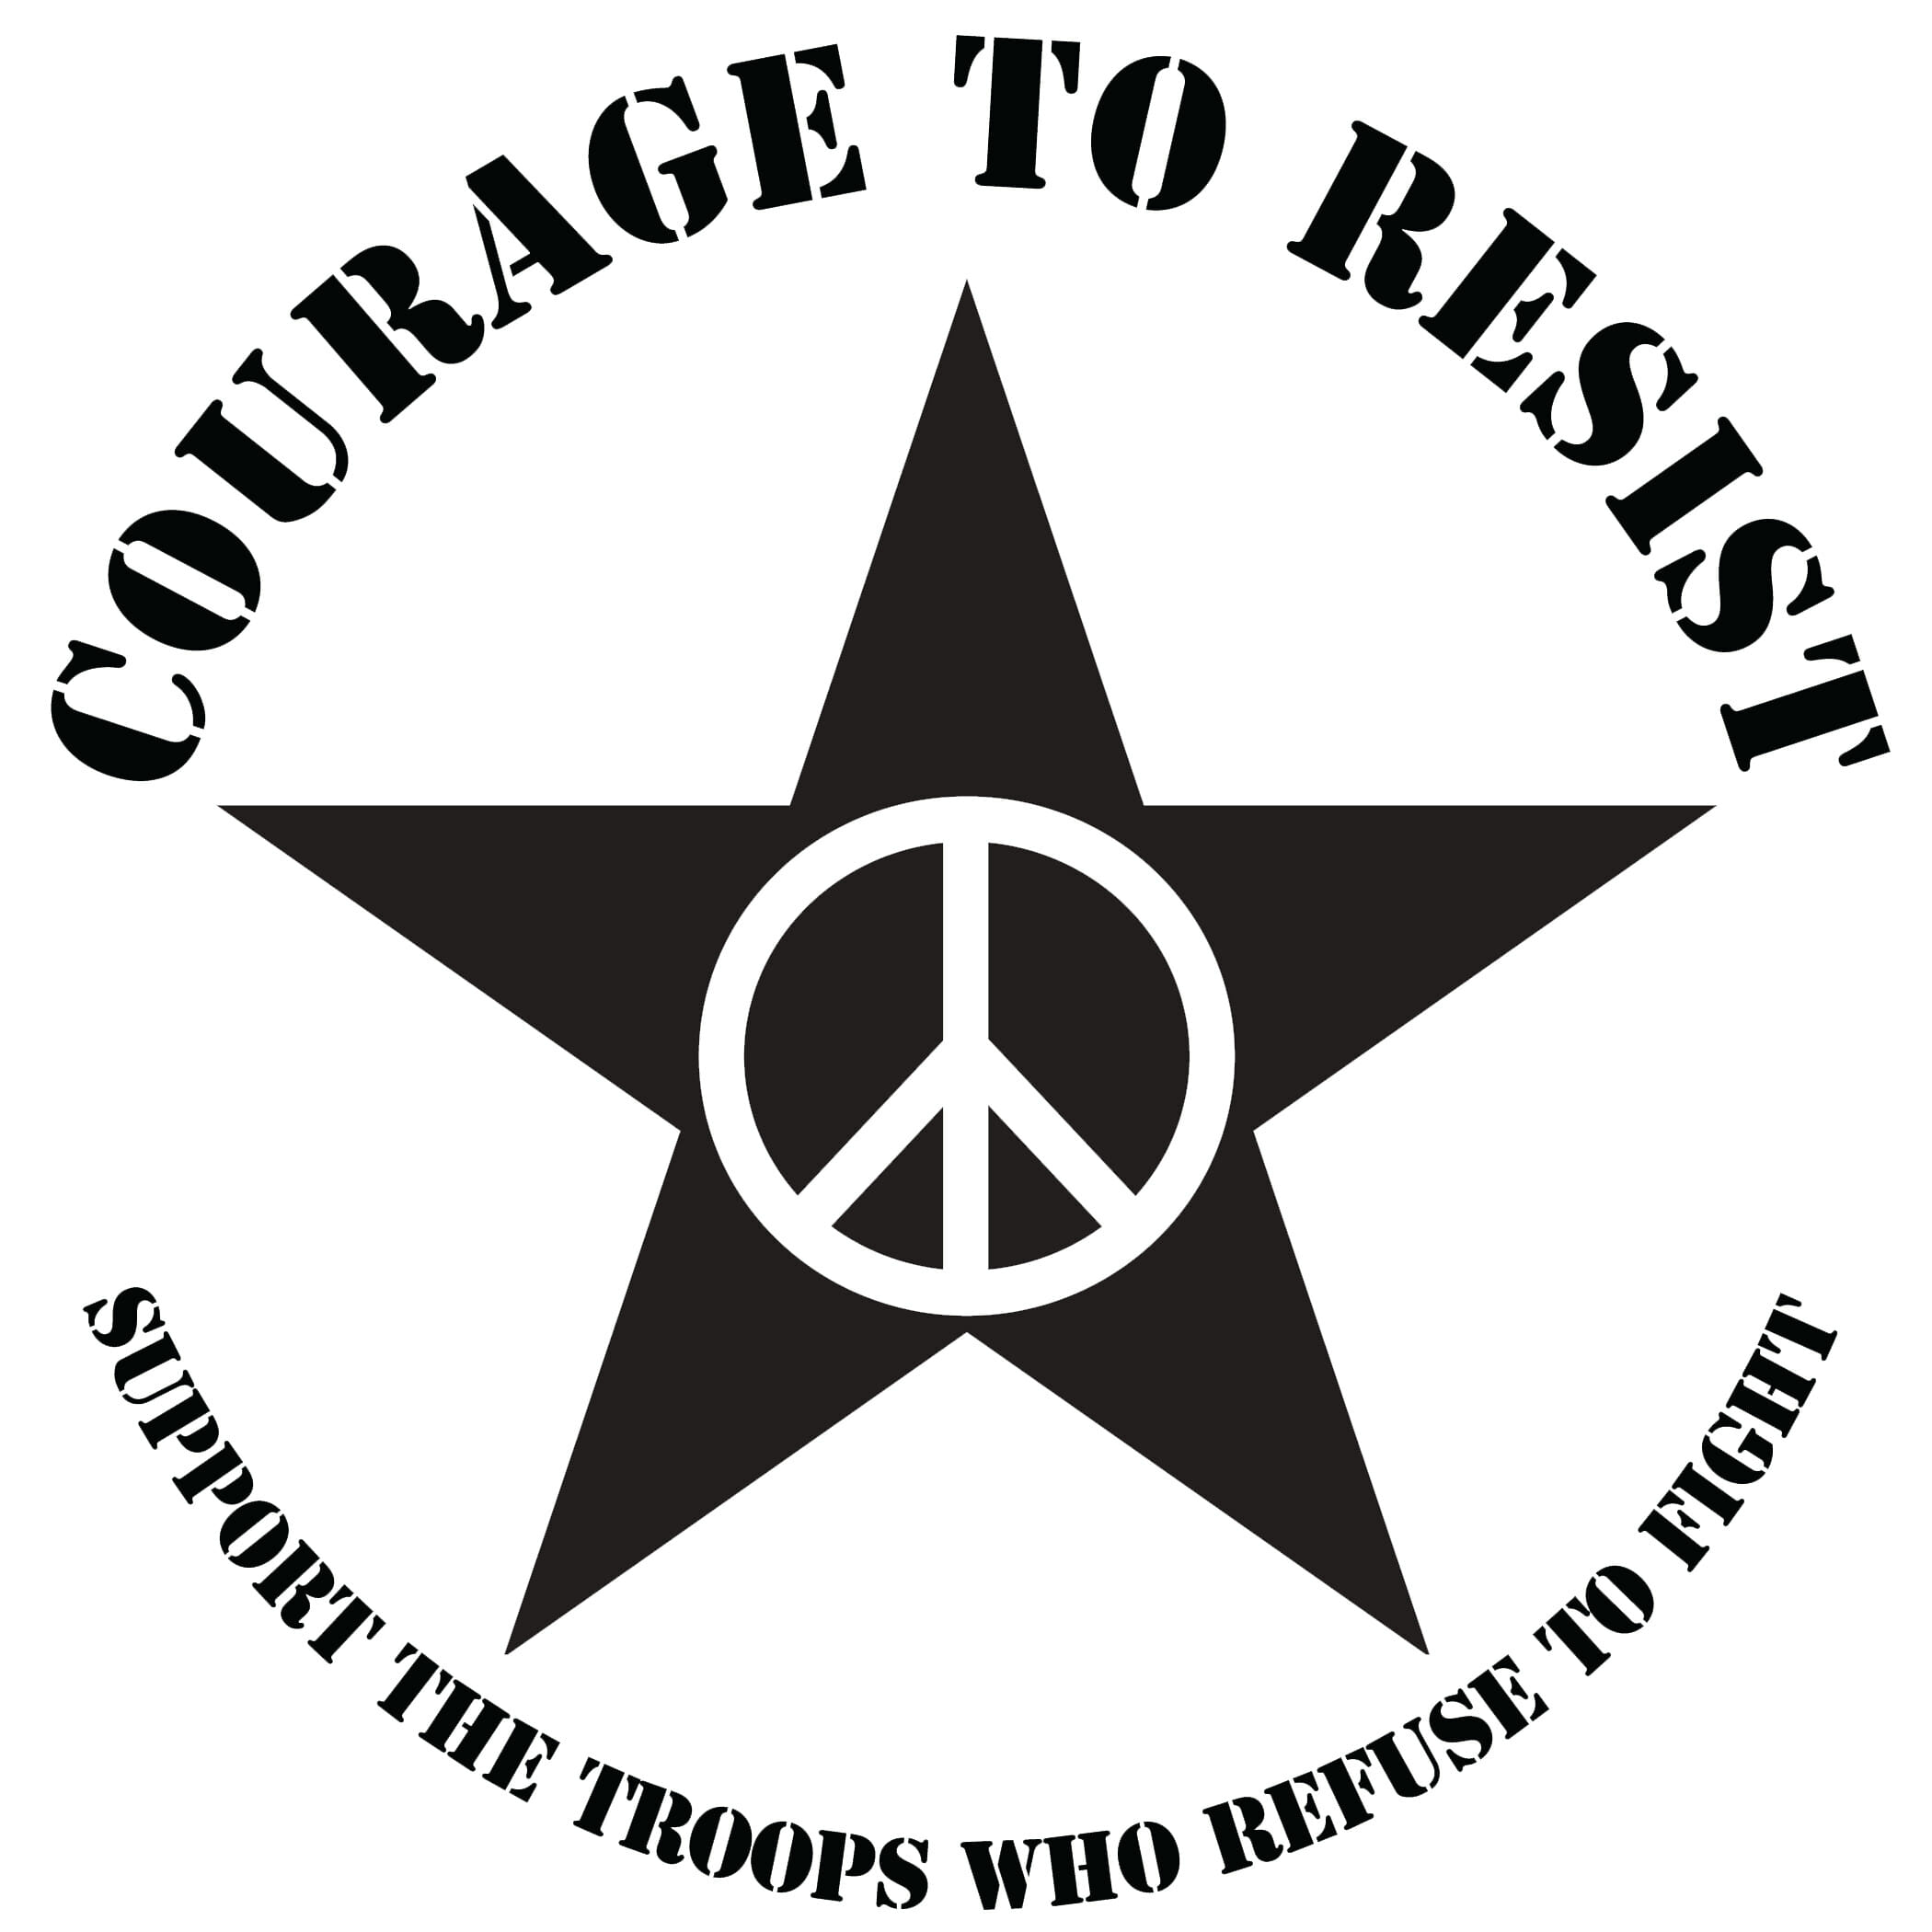 About Courage to Resist